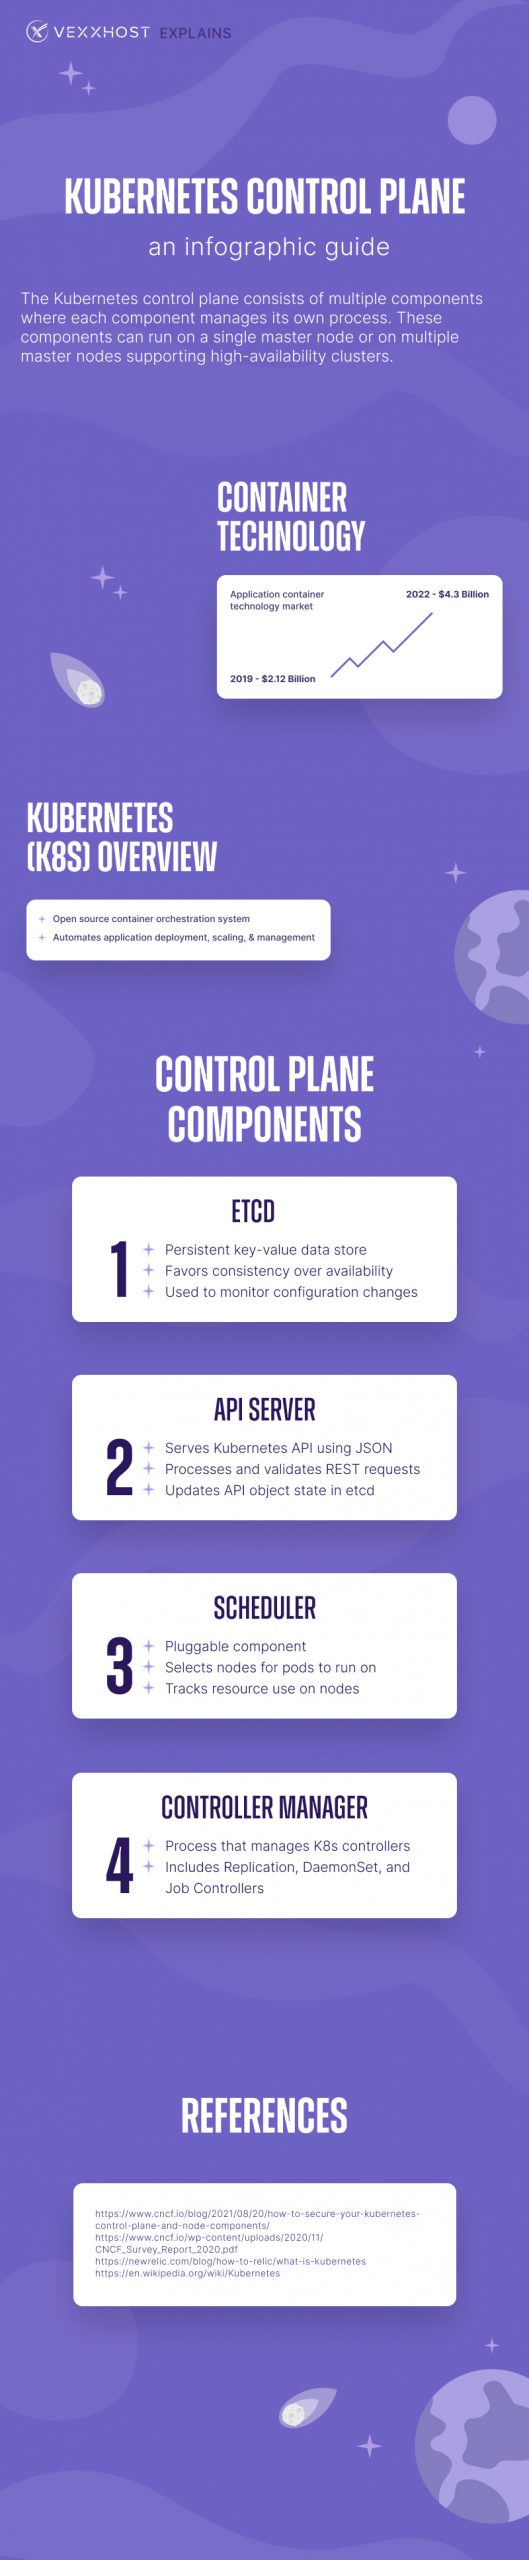 Kubernetes Control Plane - An Infographic Overview